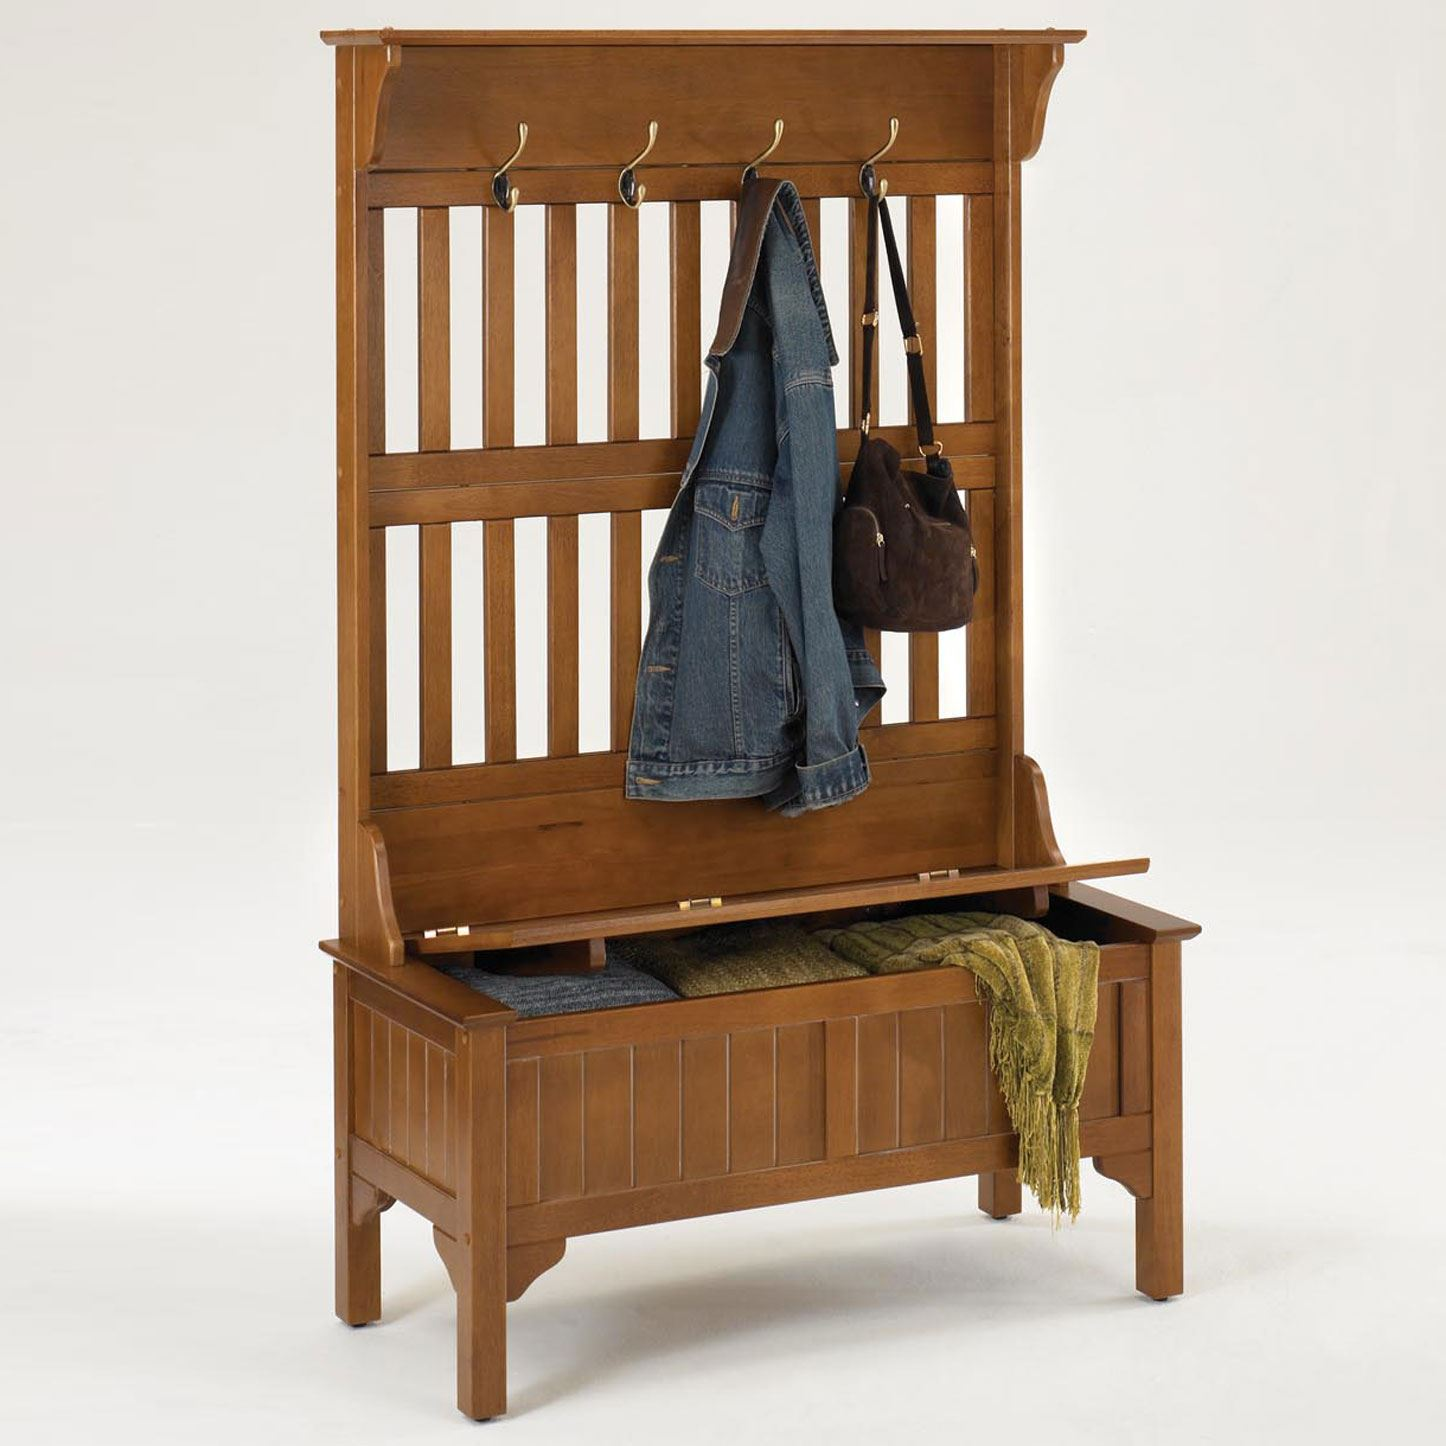 Hallway Storage Bench with Coat Rack | Entryway Storage Bench with Coat Rack | Entryway Storage Bench with Coat Rack